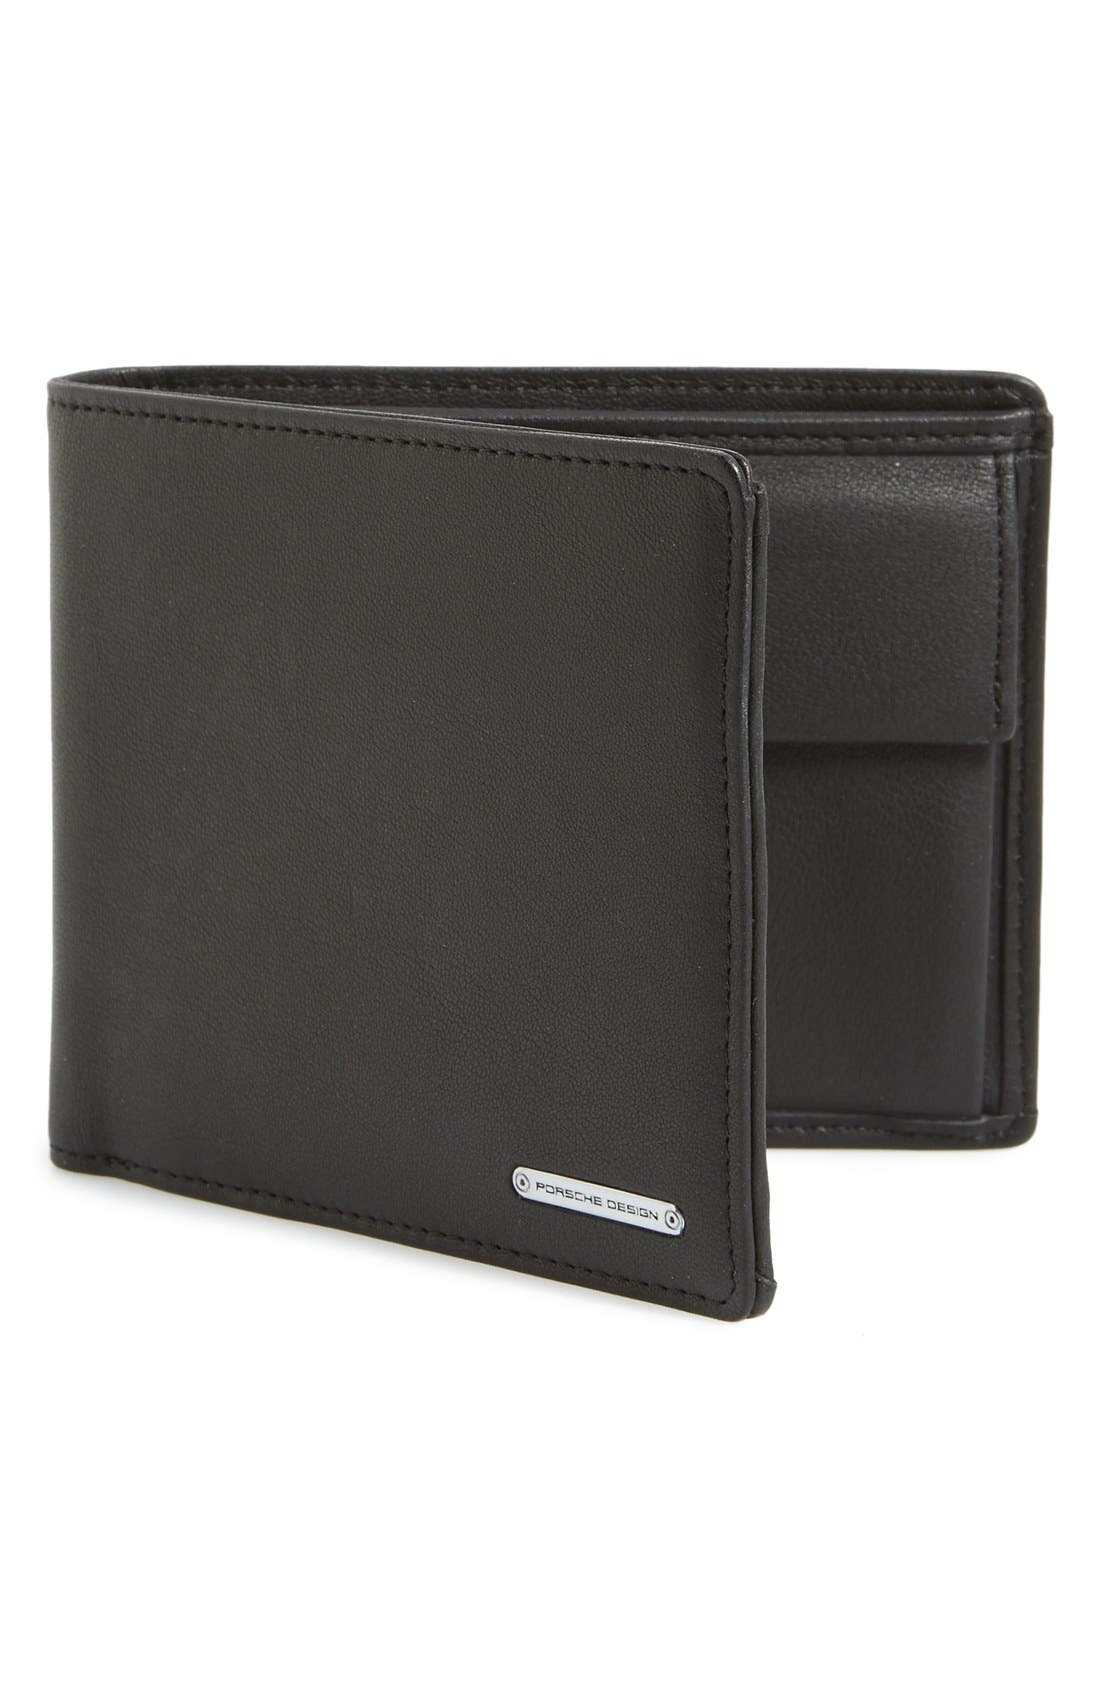 'CL2 2.0' Leather Billfold Wallet,                             Main thumbnail 1, color,                             001